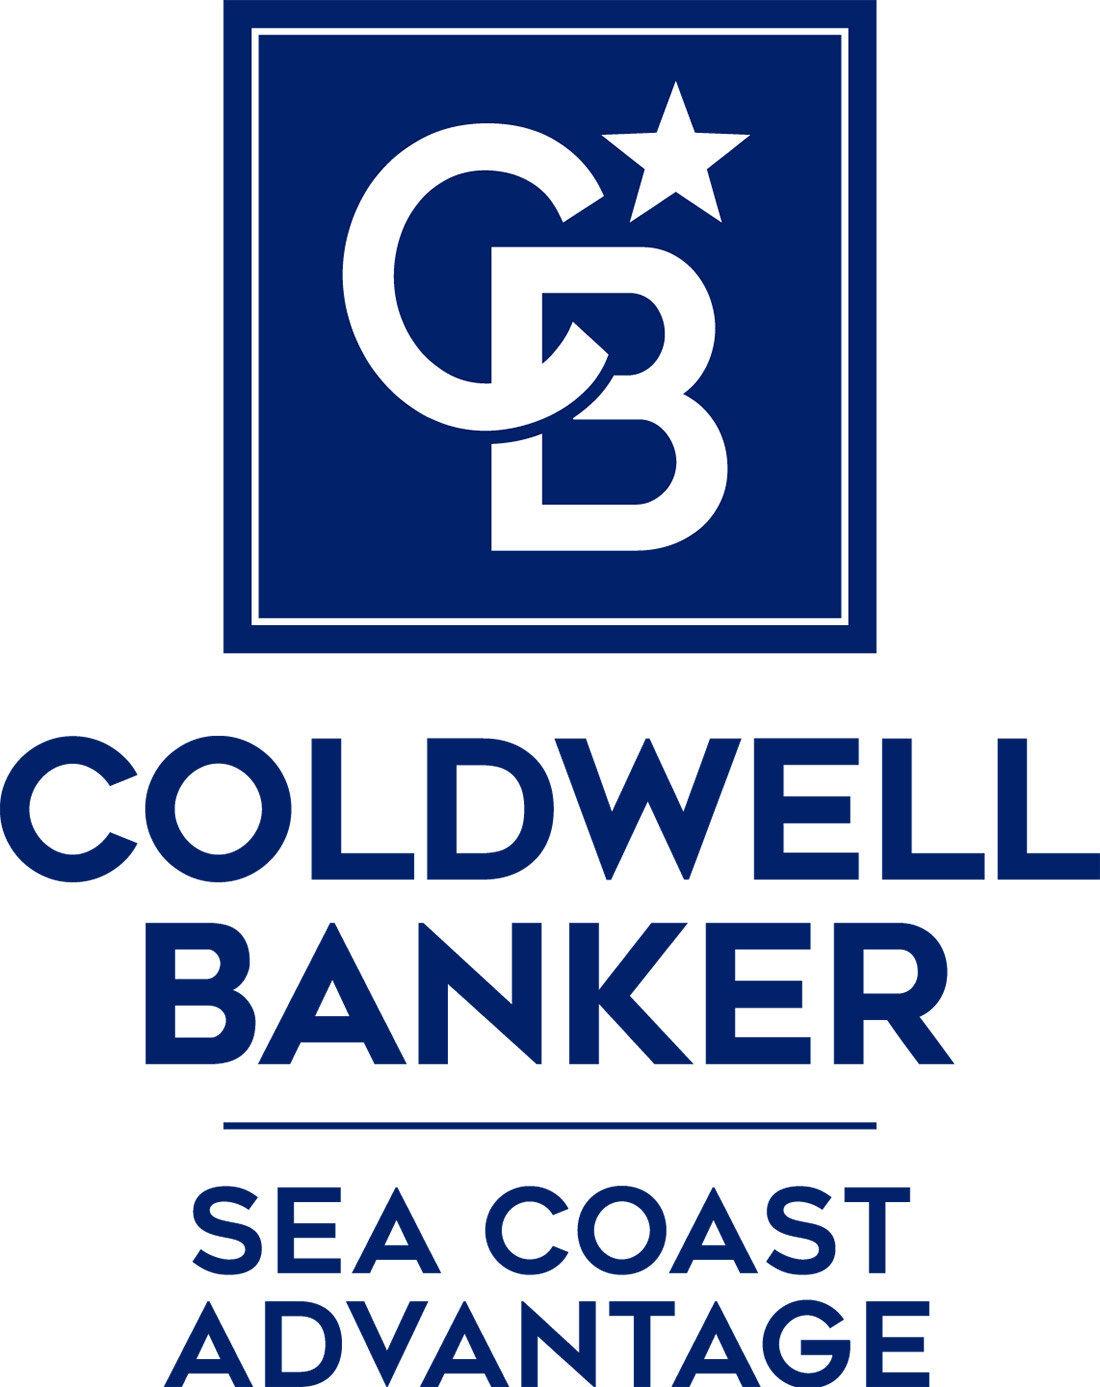 Melissa McGhee - Coldwell Banker Sea Coast Advantage Realty